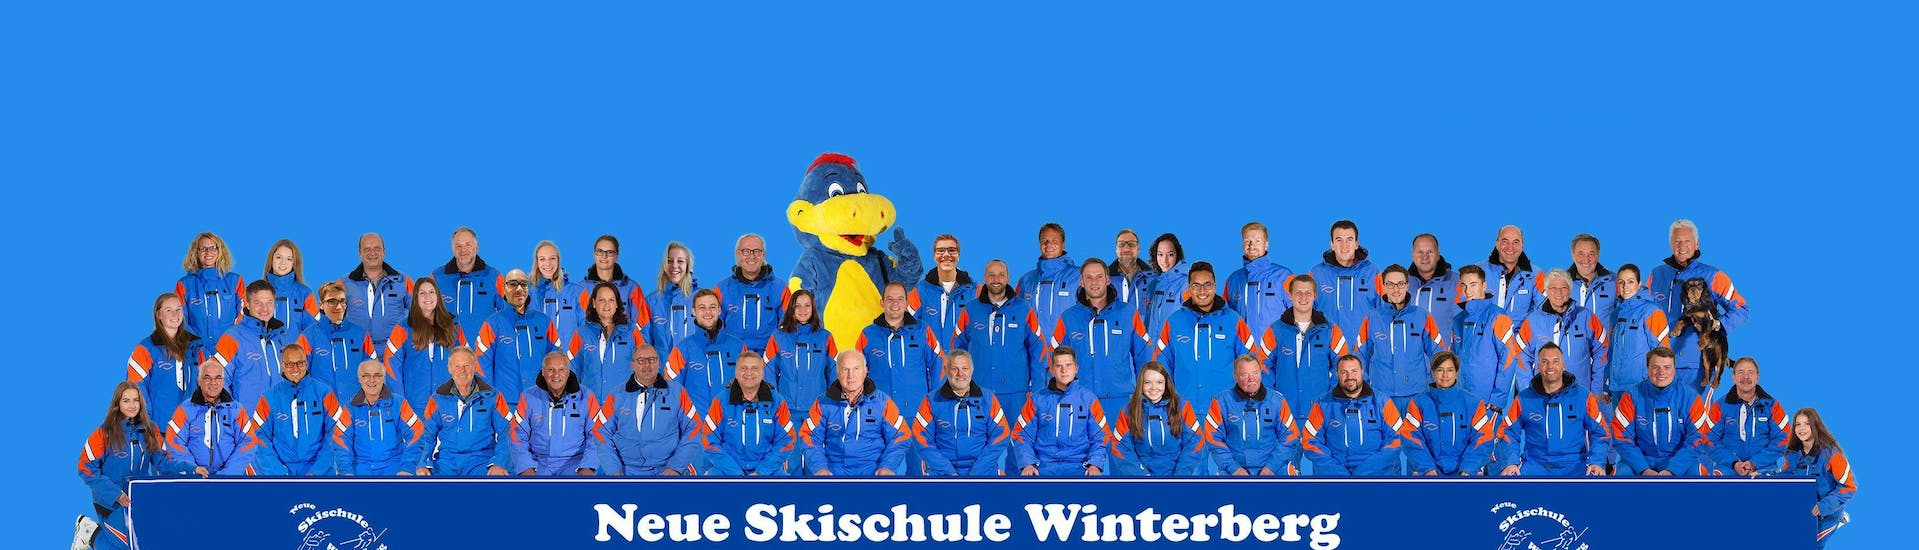 The ski instructors of the ski school Neue Skischule Winterberg are posing for a team photo with their mascot Oli.